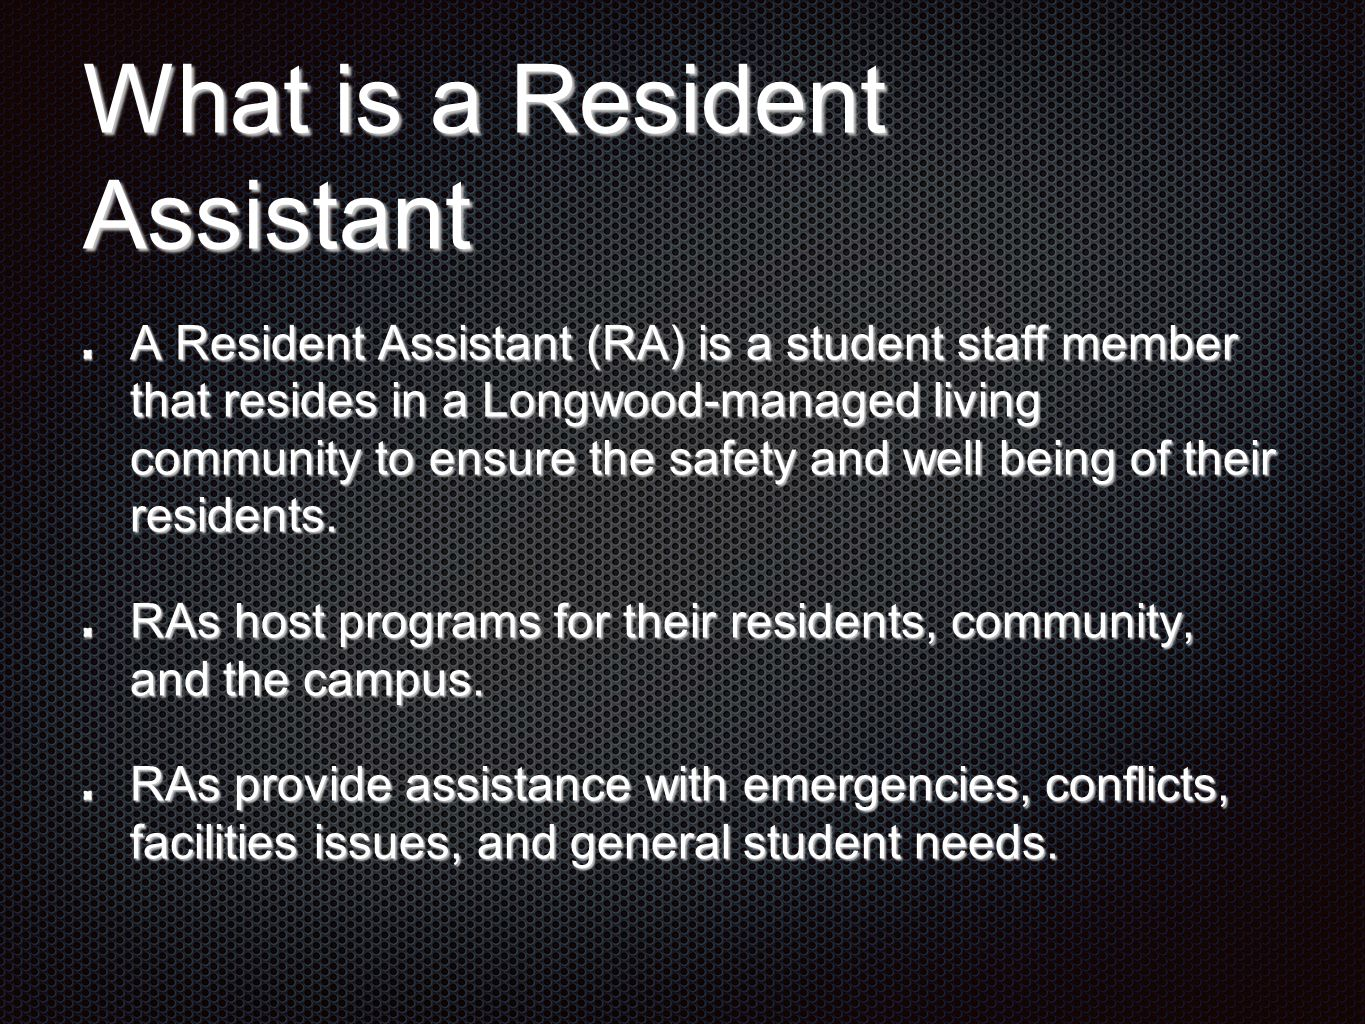 What is a Resident Assistant A Resident Assistant (RA) is a student staff member that resides in a Longwood-managed living community to ensure the saf